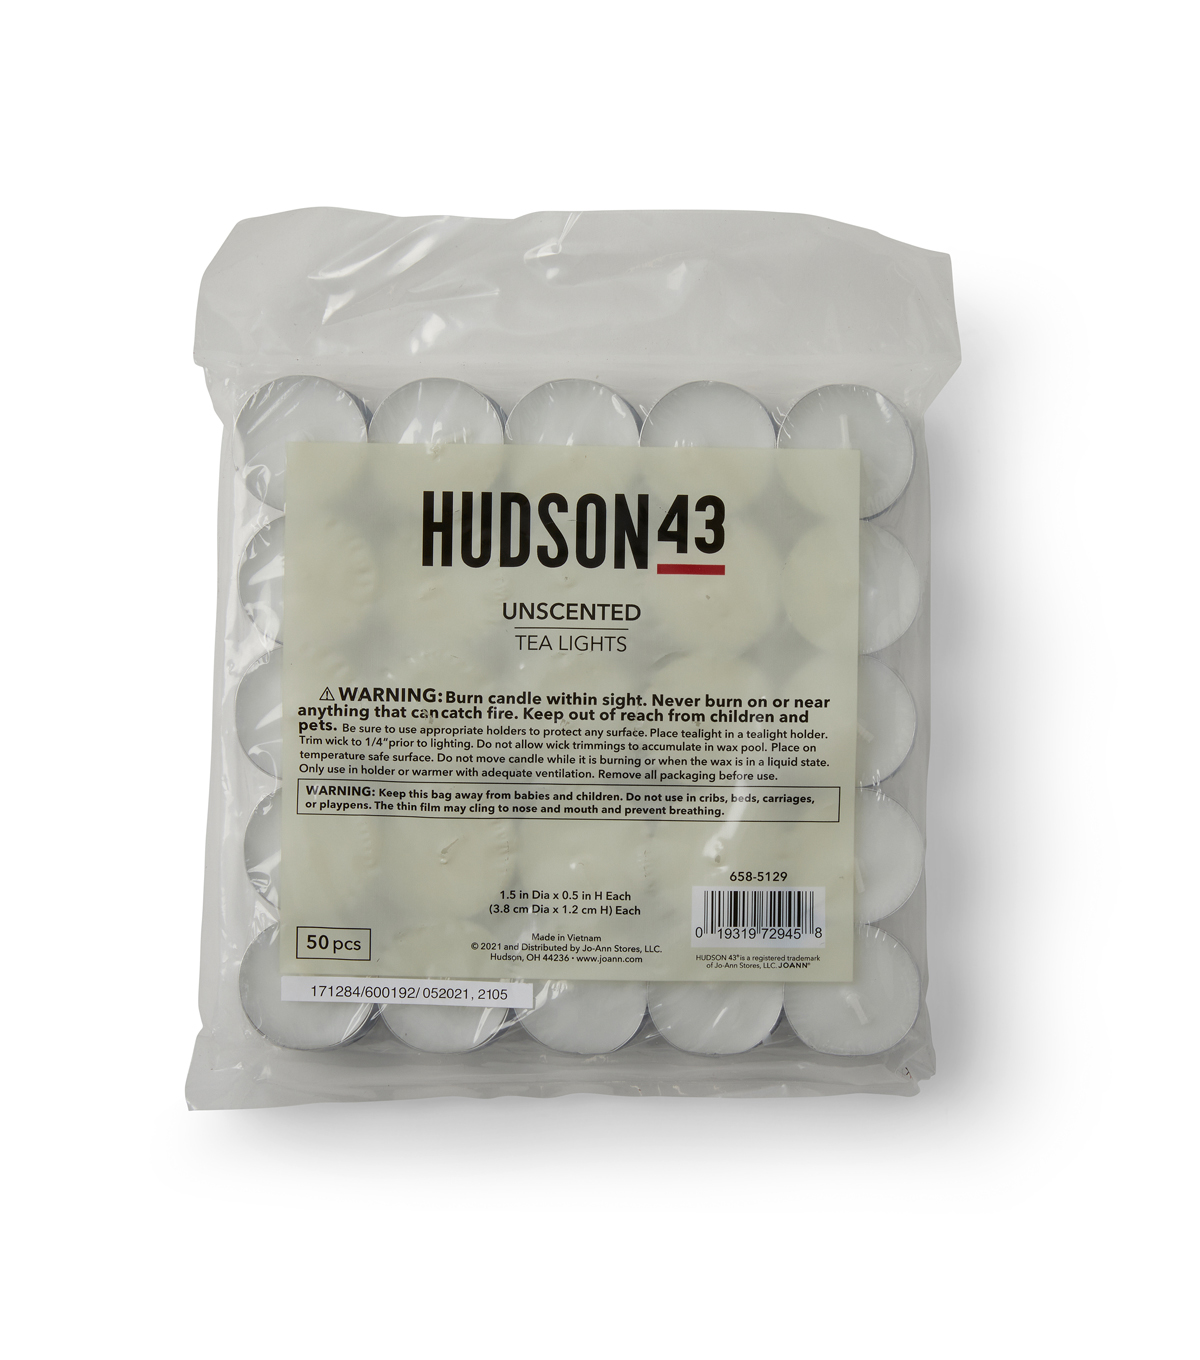 Hudson 43 Candle & Light Collection 50pk Unscented Tealights-White